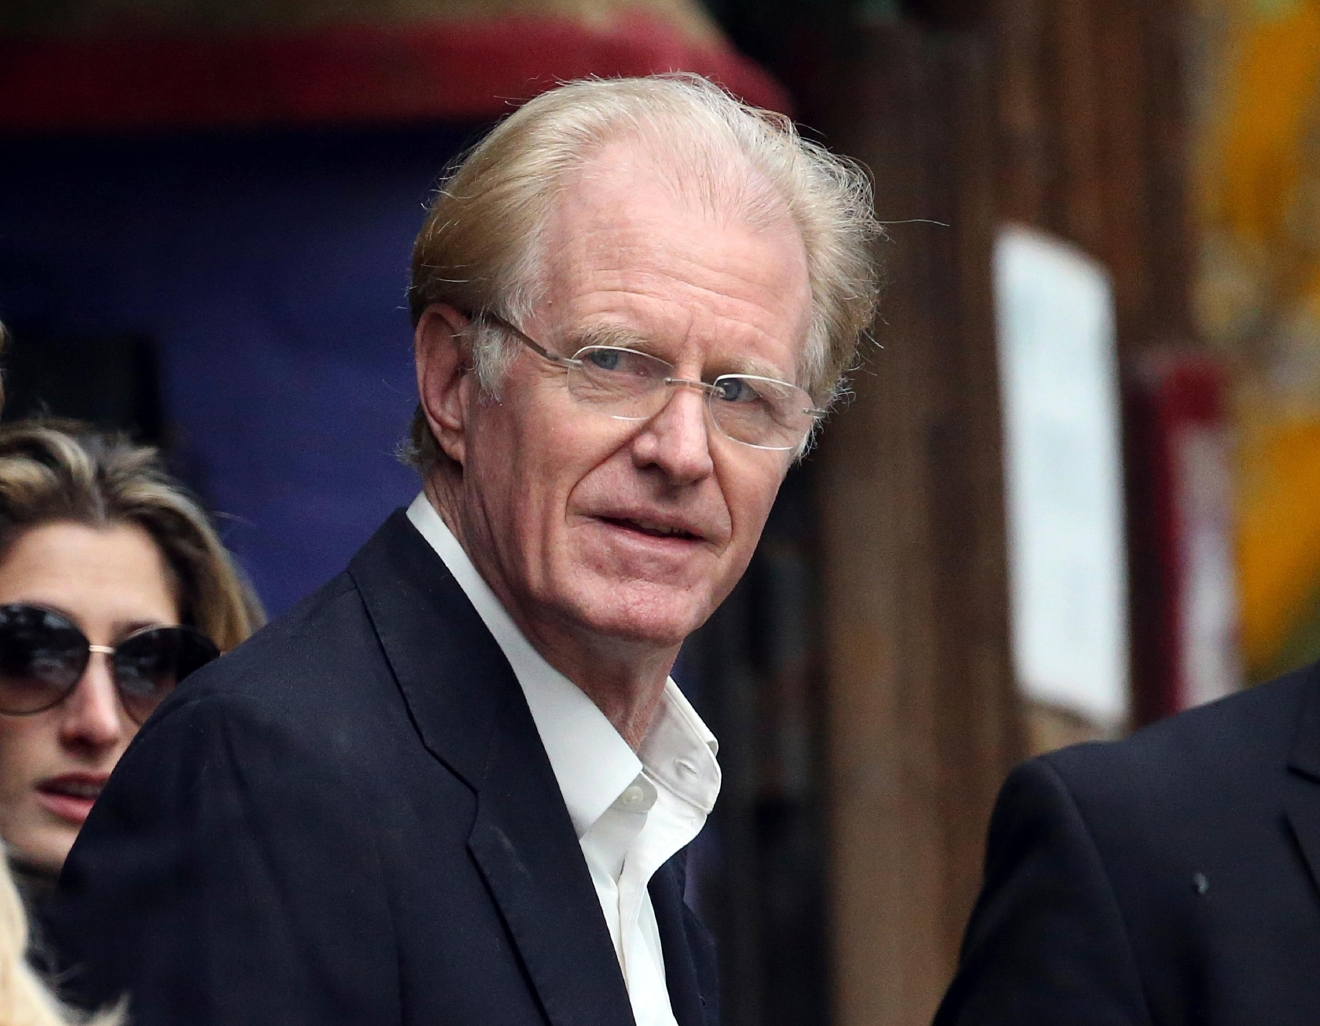 Actor Ed Begley Jr. arrives at a memorial service at the homes of Debbie Reynolds and her daughter Carrie Fisher in Los Angeles Thursday, Jan. 5, 2017. Reynolds died Dec. 28 at the age of 84, a day after her daughter died at the age of 60. (AP Photo/Reed Saxon)